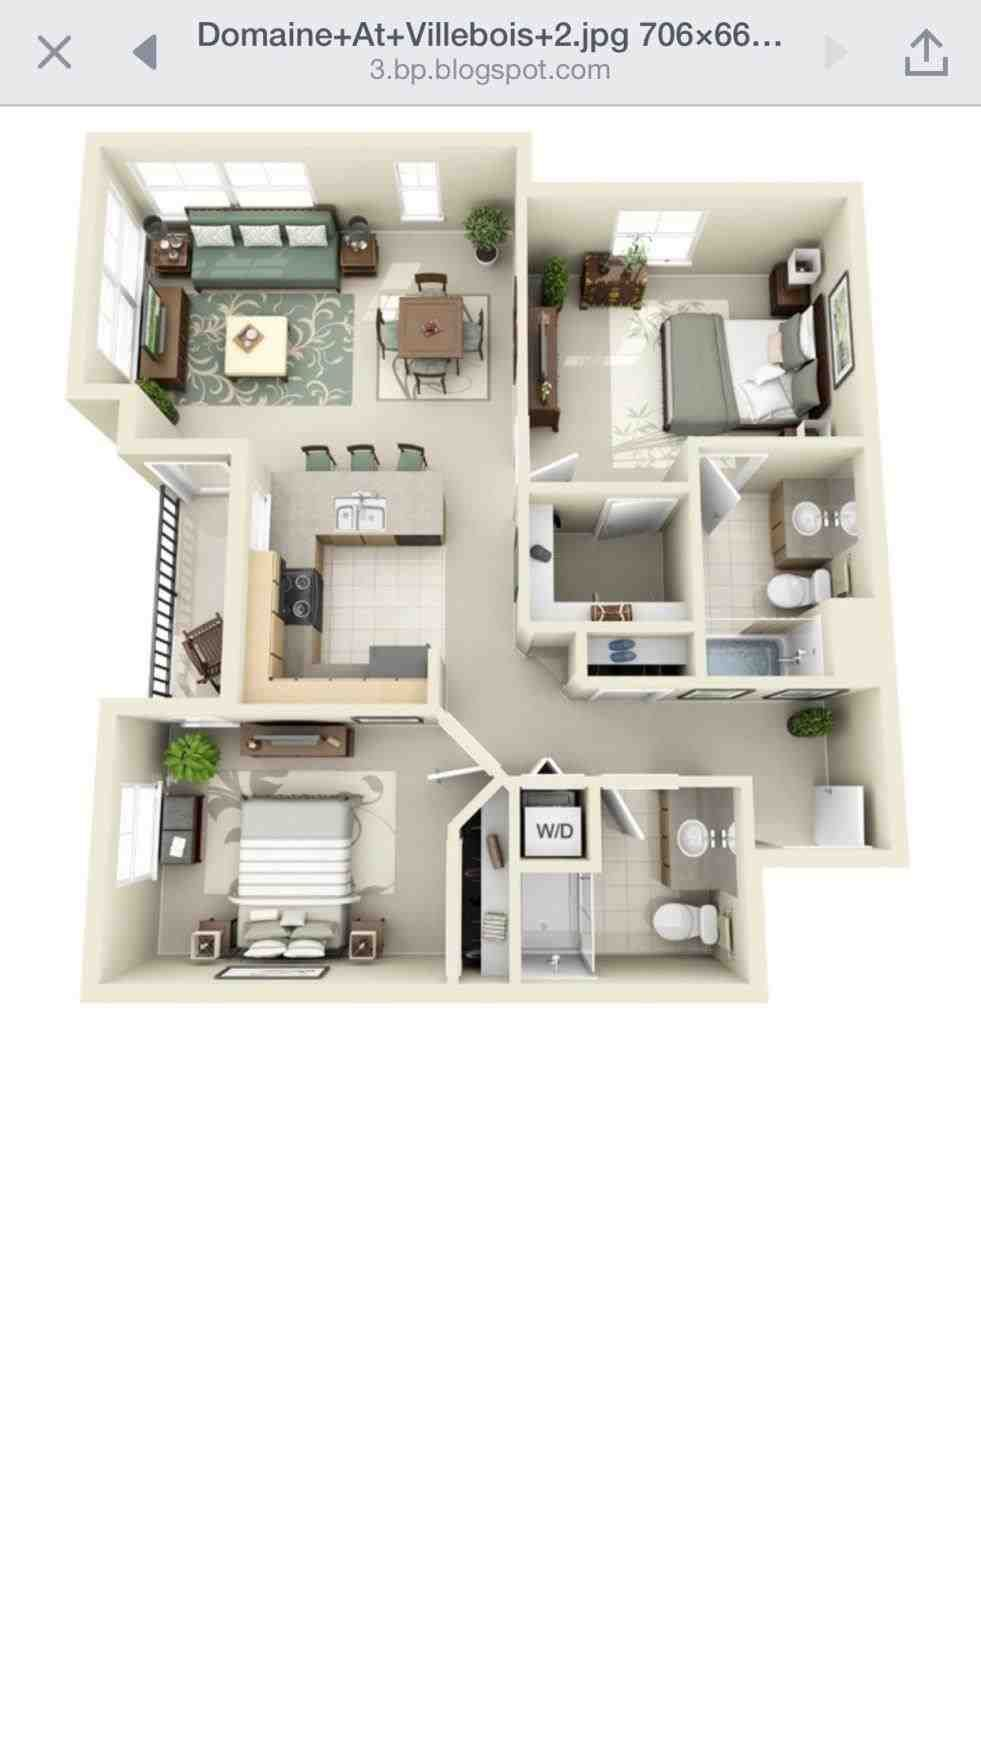 2 Bedroom Apartment Floor Plan 3d One Bedroom Apartments 3d Floor Plan Studi 2 Bedroom Apartment Floor Plan Apartment Floor Plan Studio Apartment Floor Plans